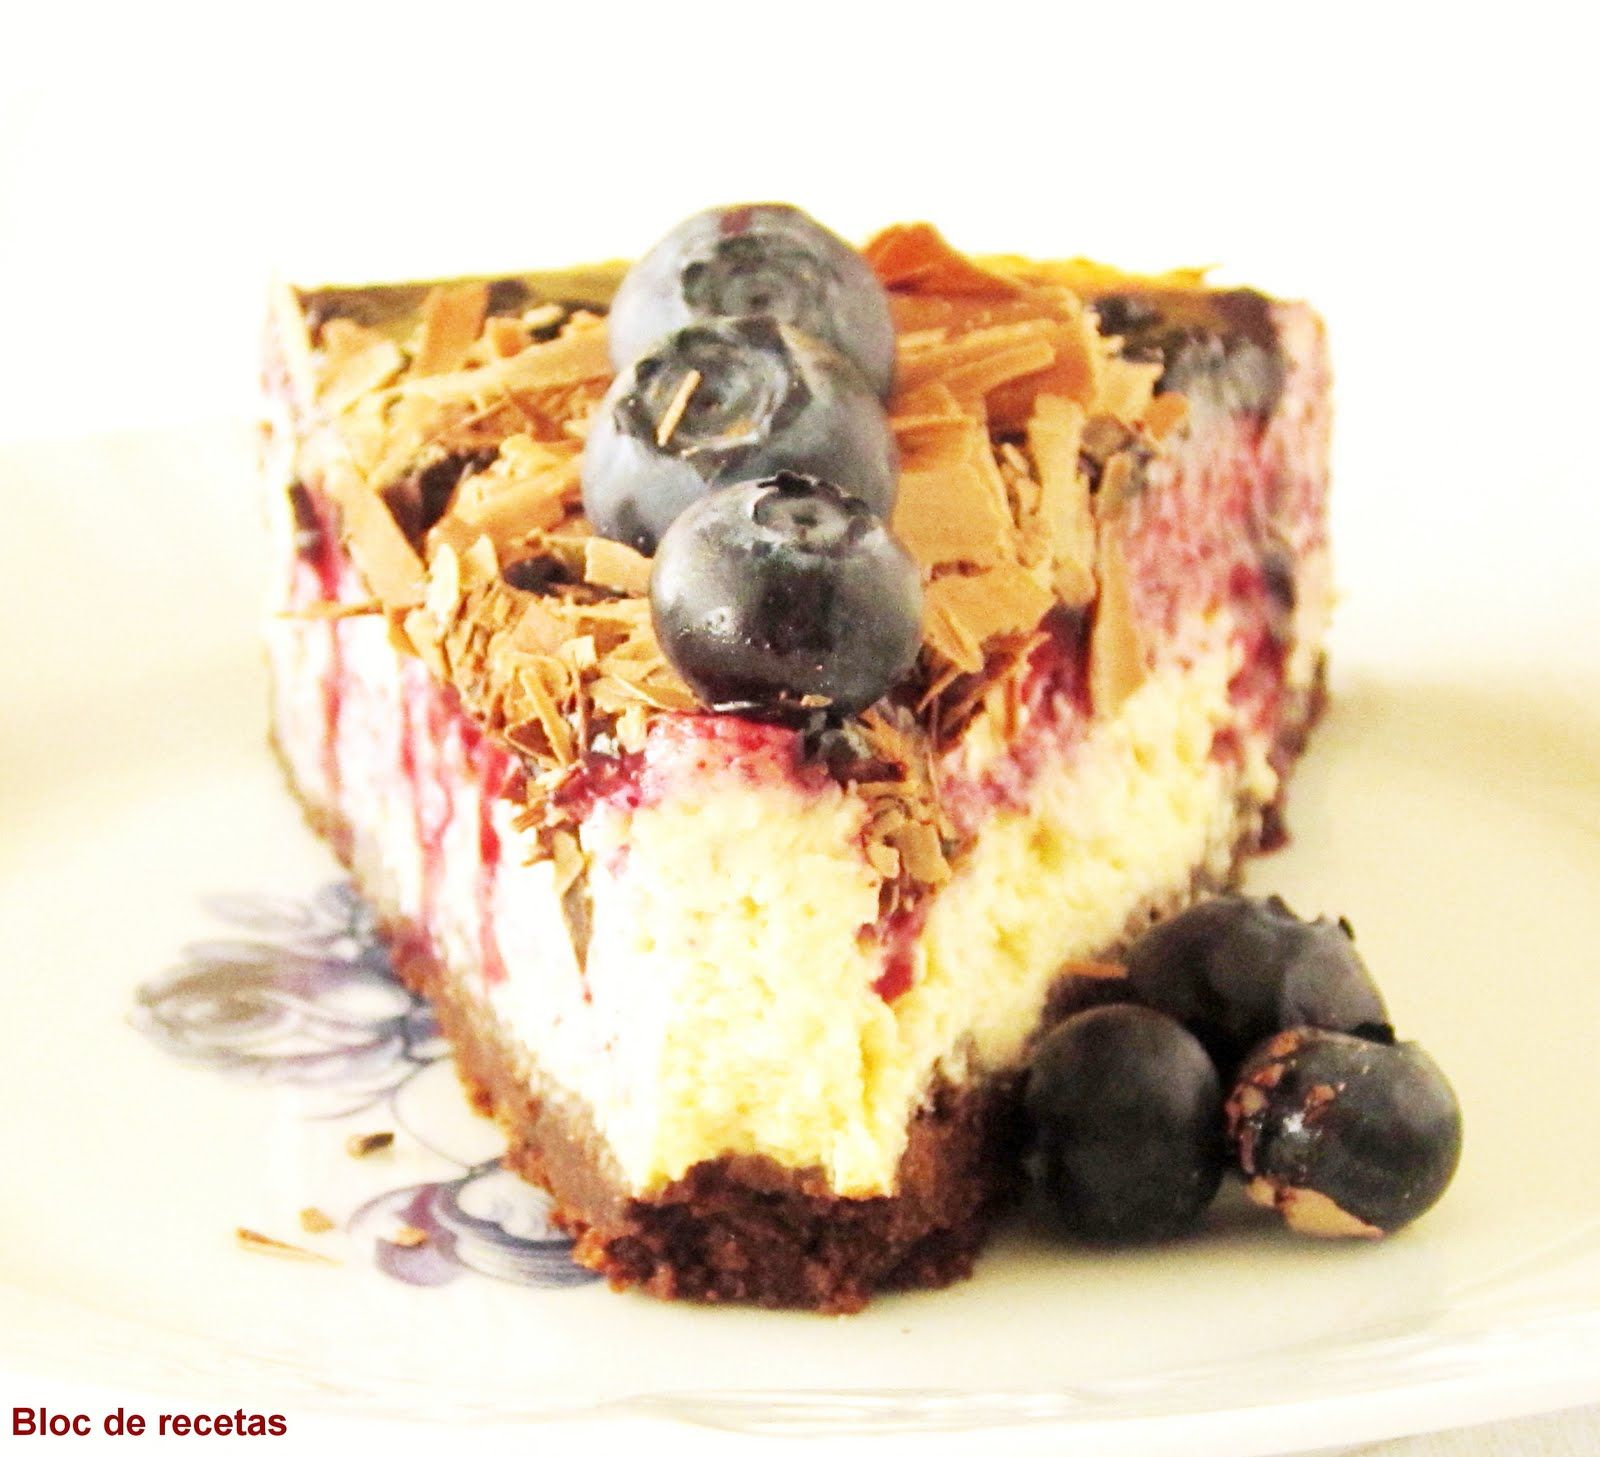 Cheesecake with chocolate and blueberries